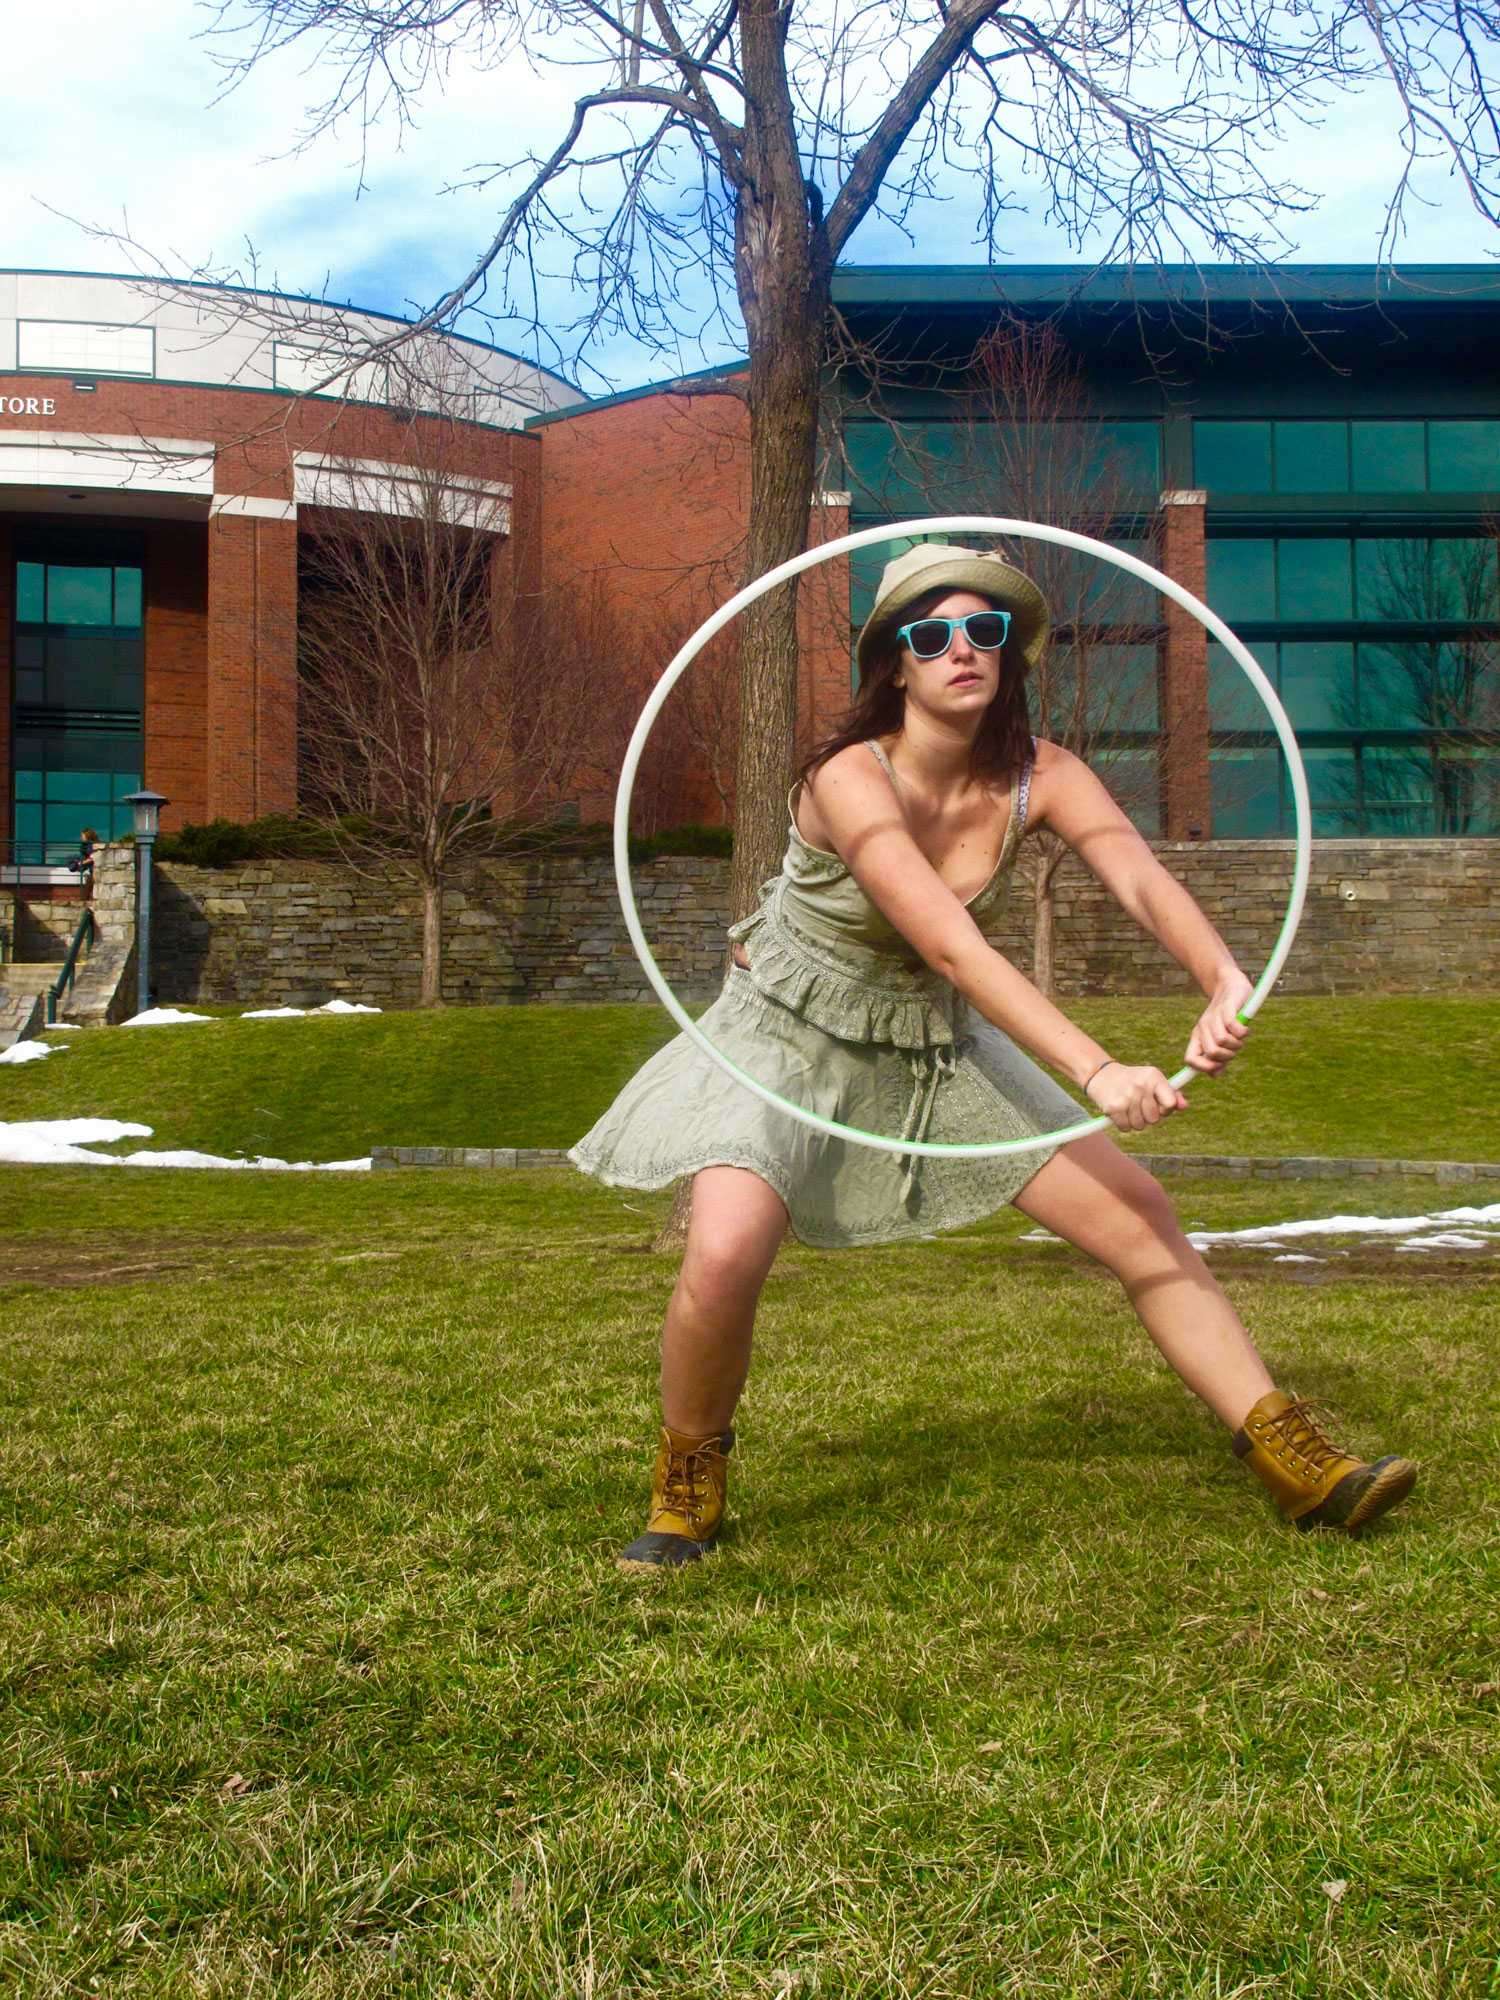 High Country Hoop Troupe expresses flow arts through hooping